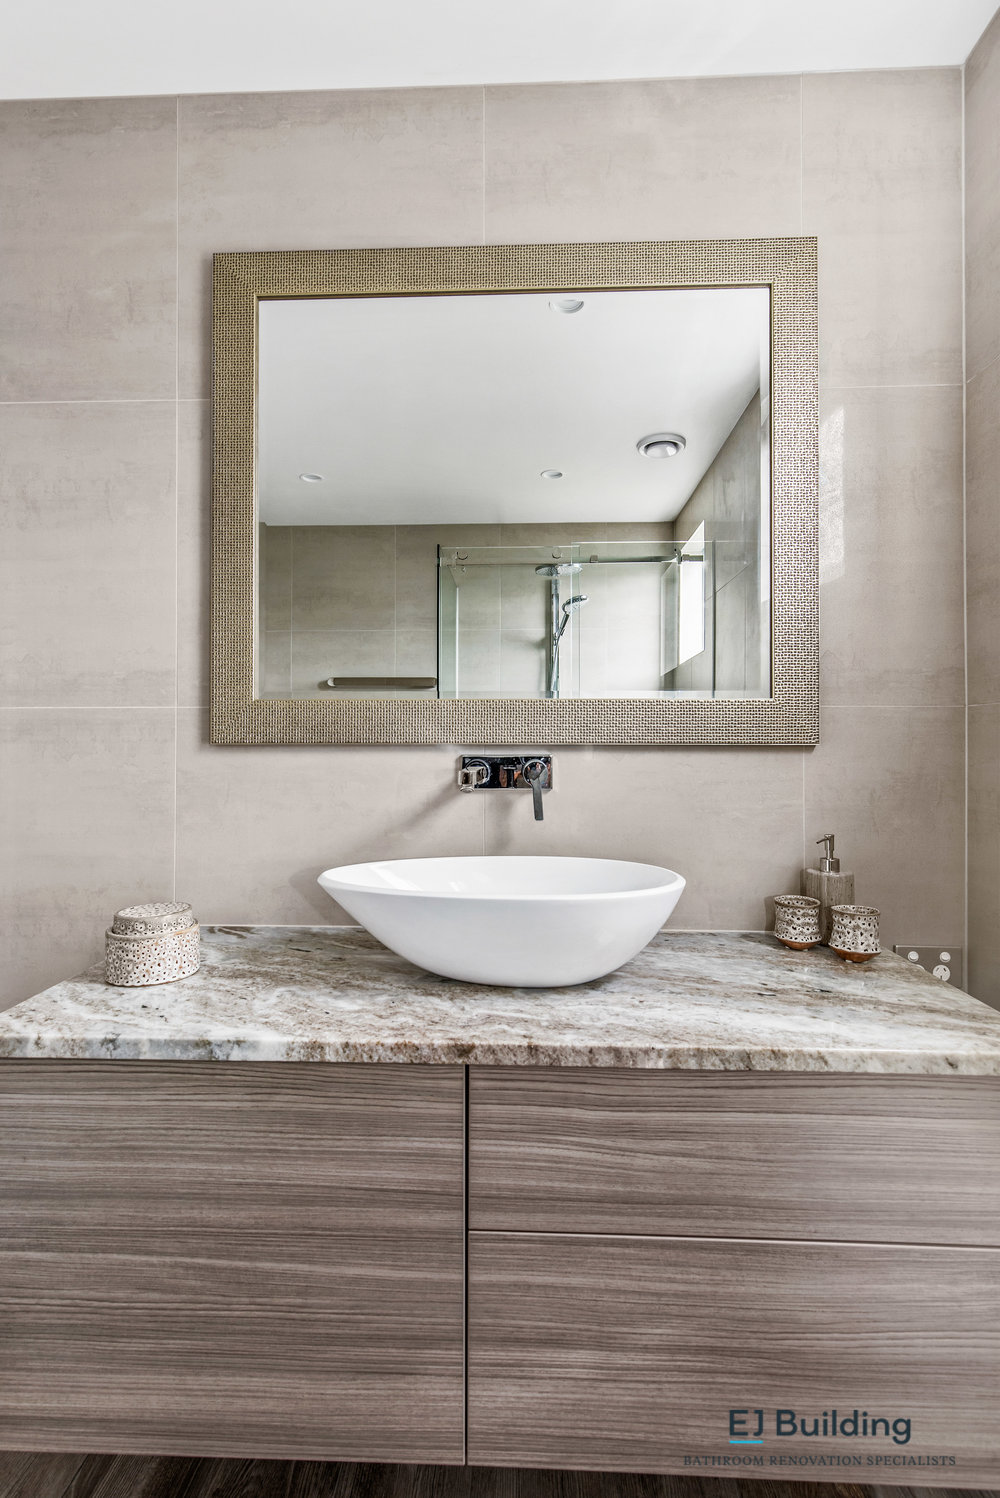 Bathroom renovation, interior designer, surface mounted bowl on custom made bathroom vanity and matching mirror.